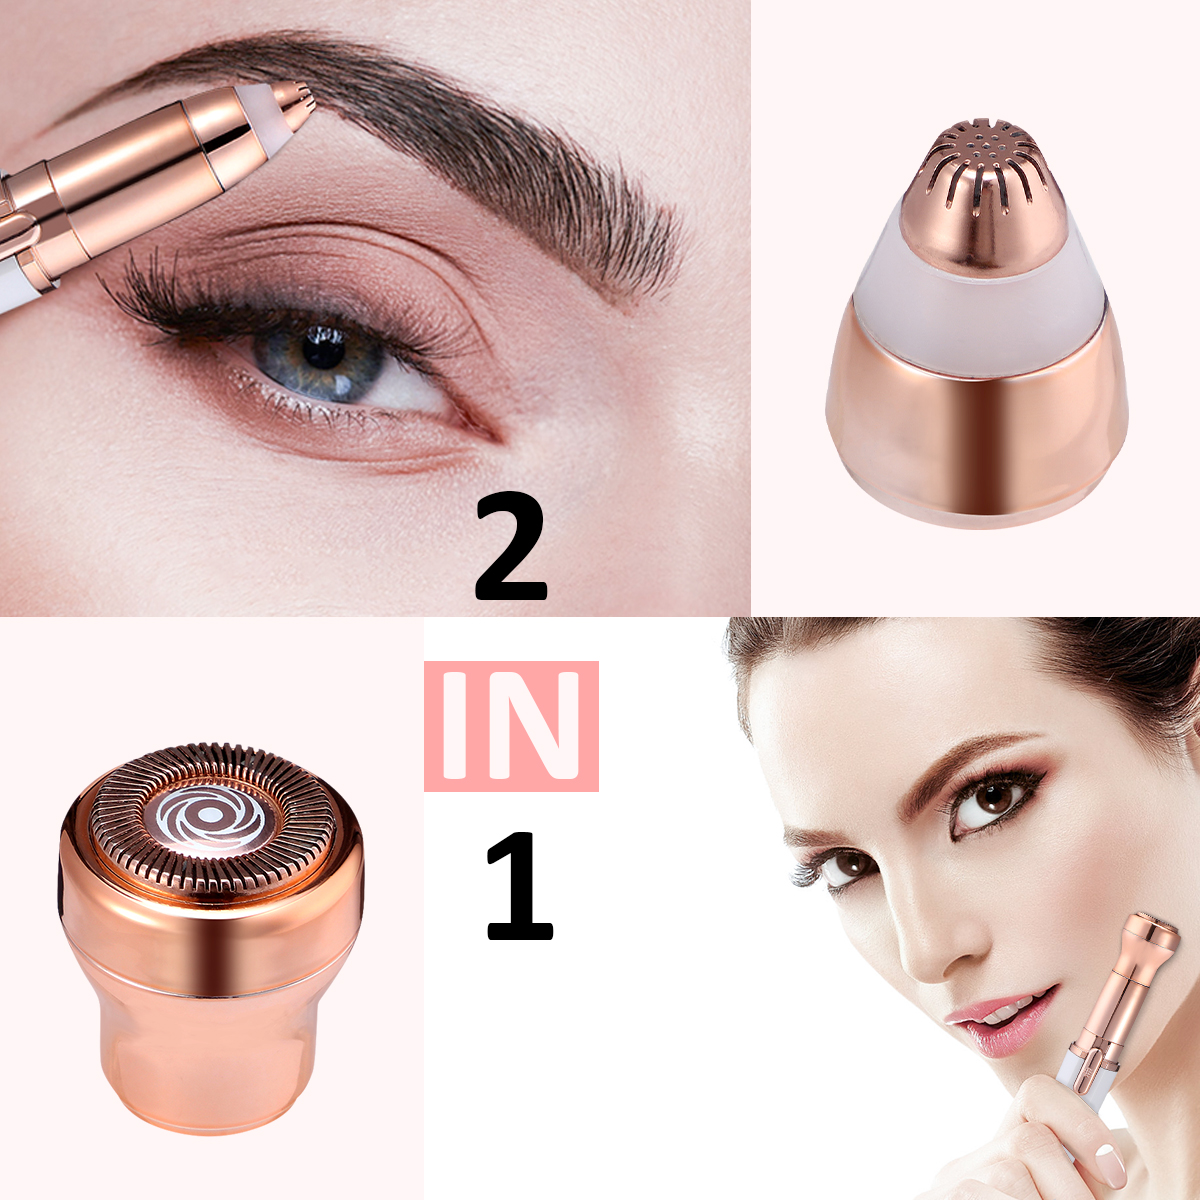 Hapord Eyebrow Hair Remover Hassle-Free Portable Finishing Touch Flawless Brows Removal Razor With Light Battery Included